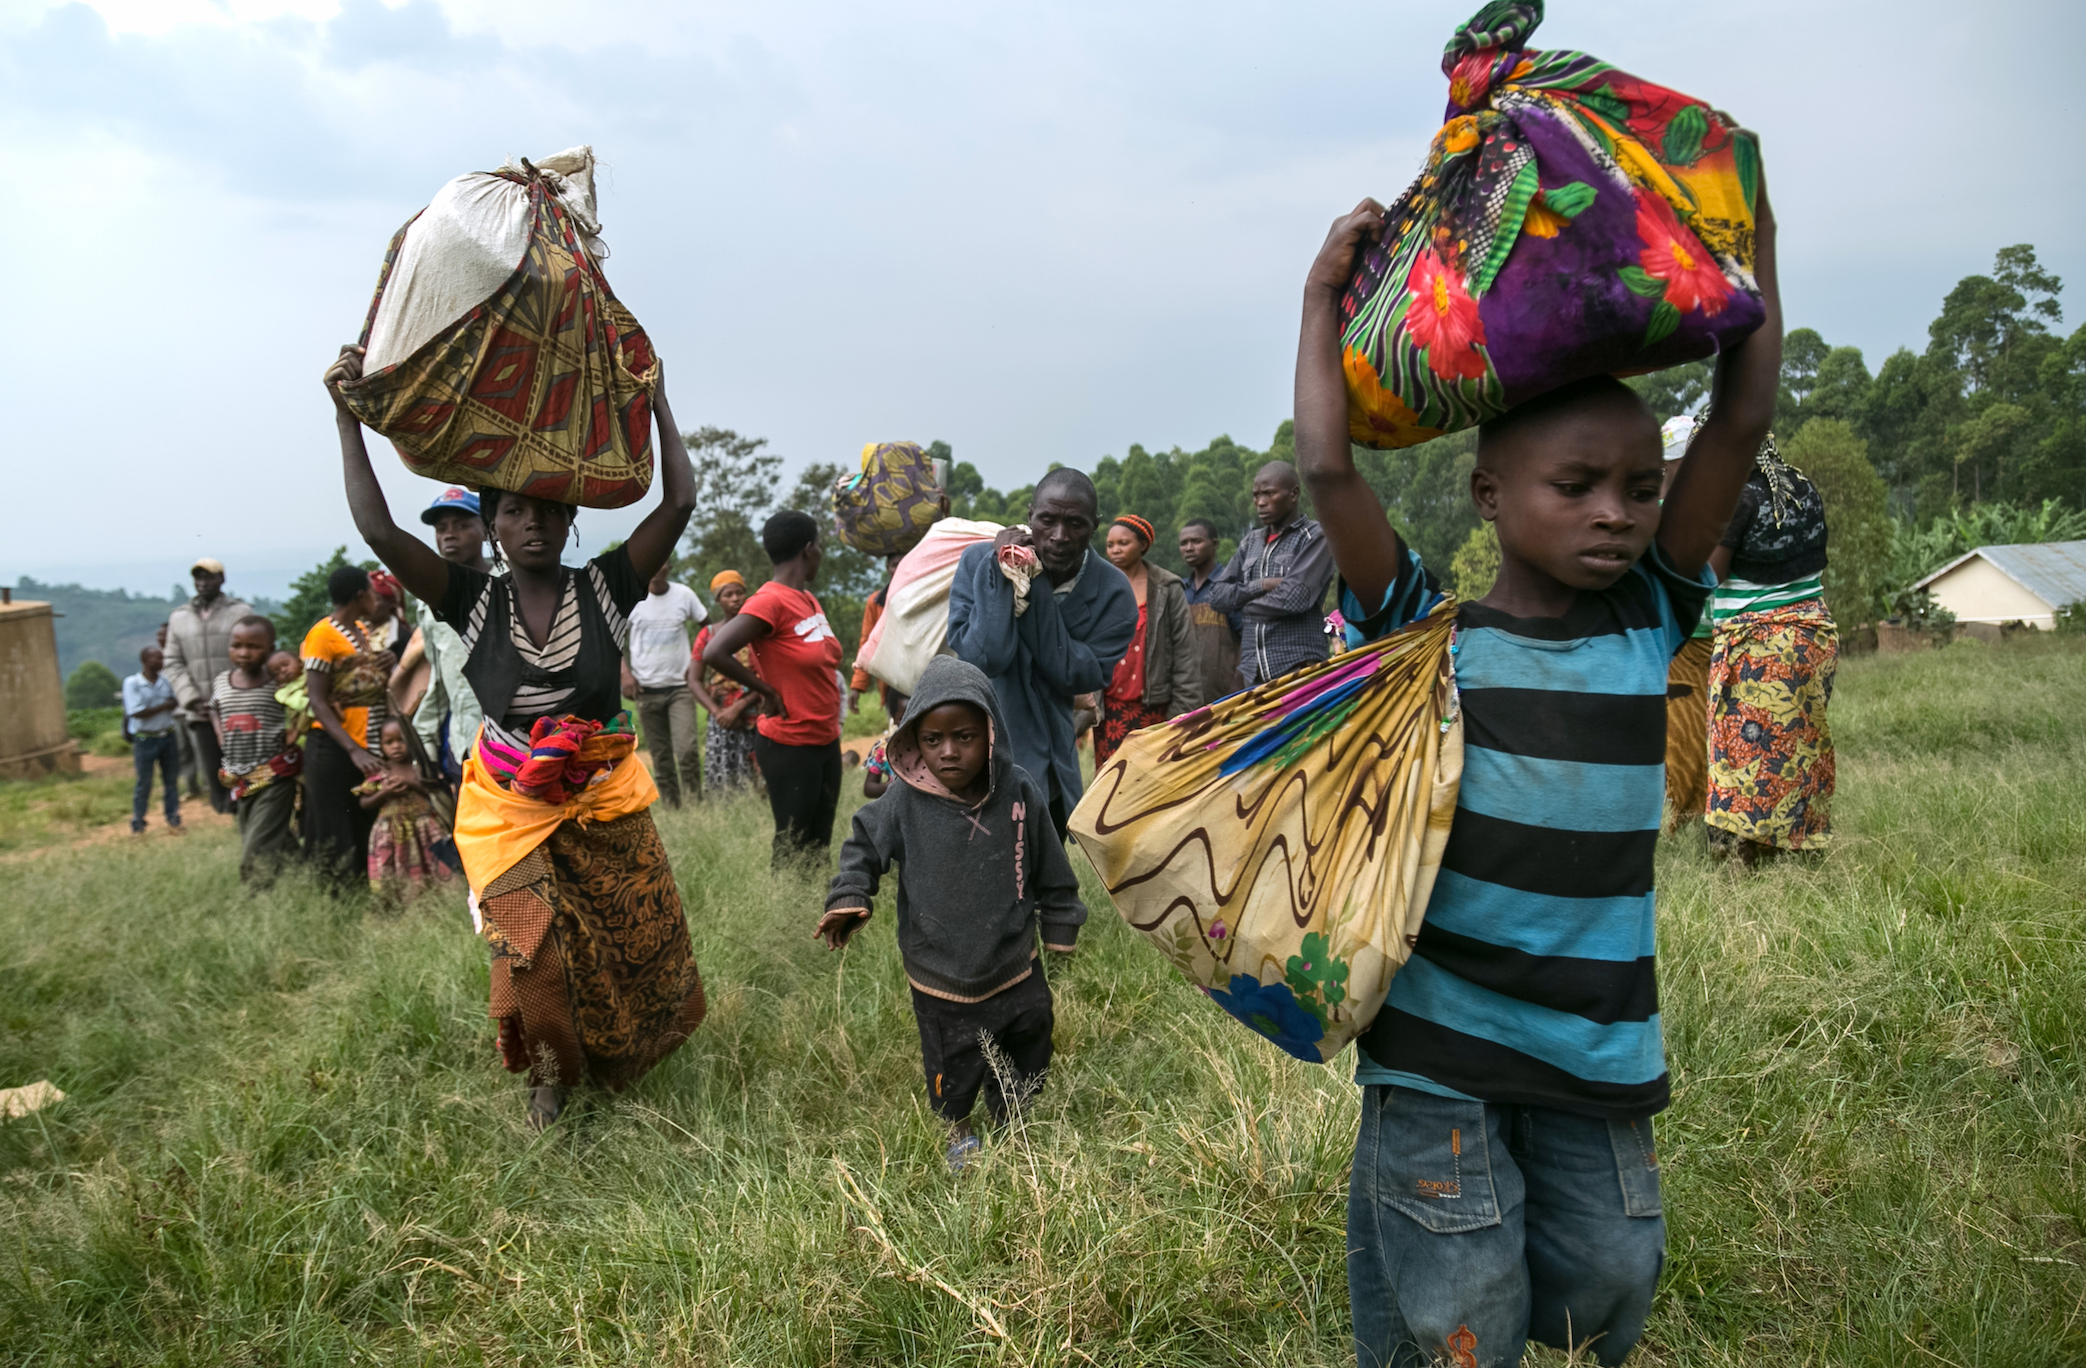 Eastern DR Congo, and the people's plight